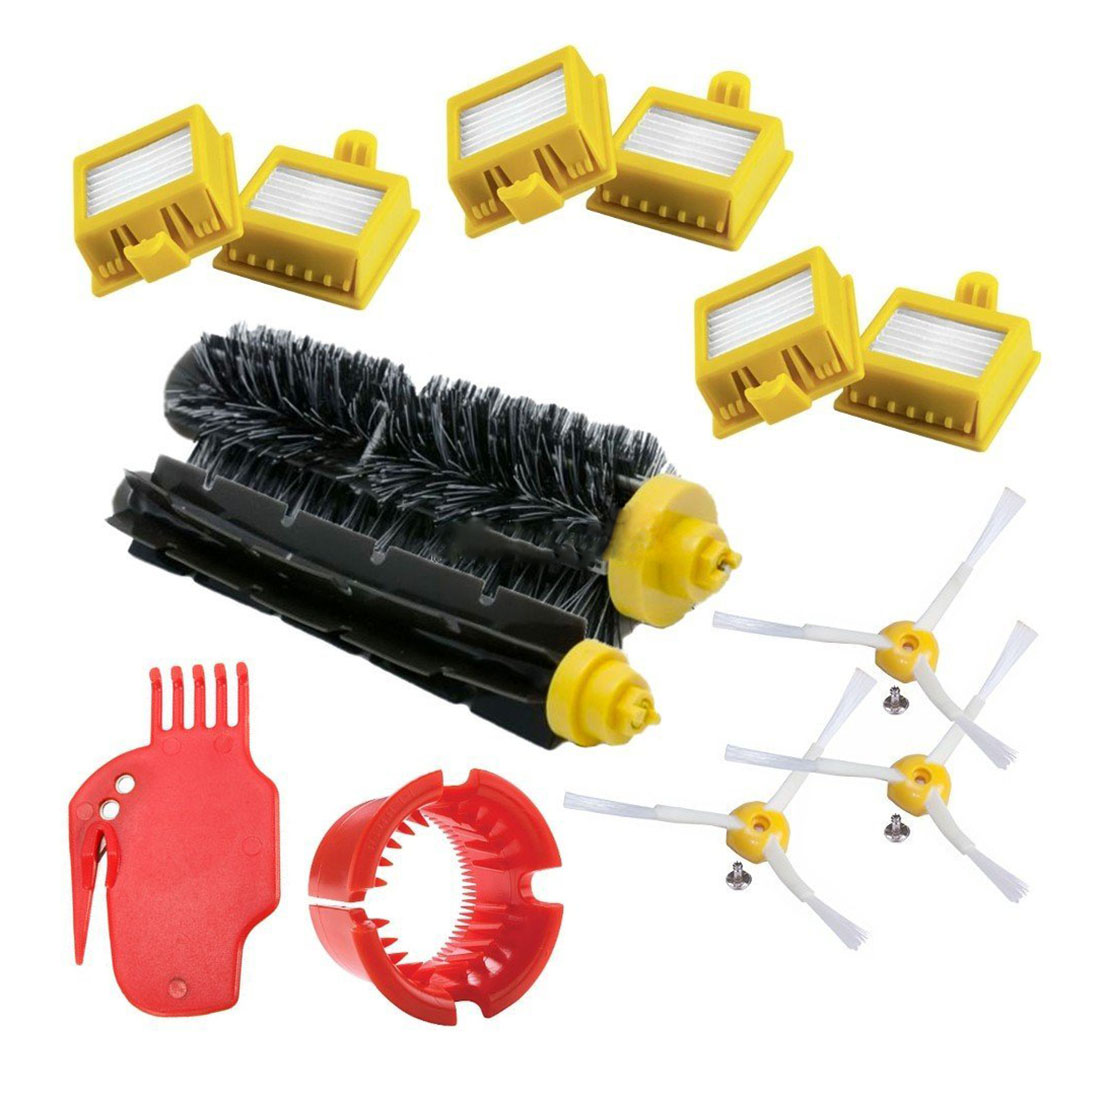 Compatible with Roomba Series 700 760 765 770 772 775 776 776 P 780 782 785 786 Spare Kit,Vacuum Robot and Replacement Parts